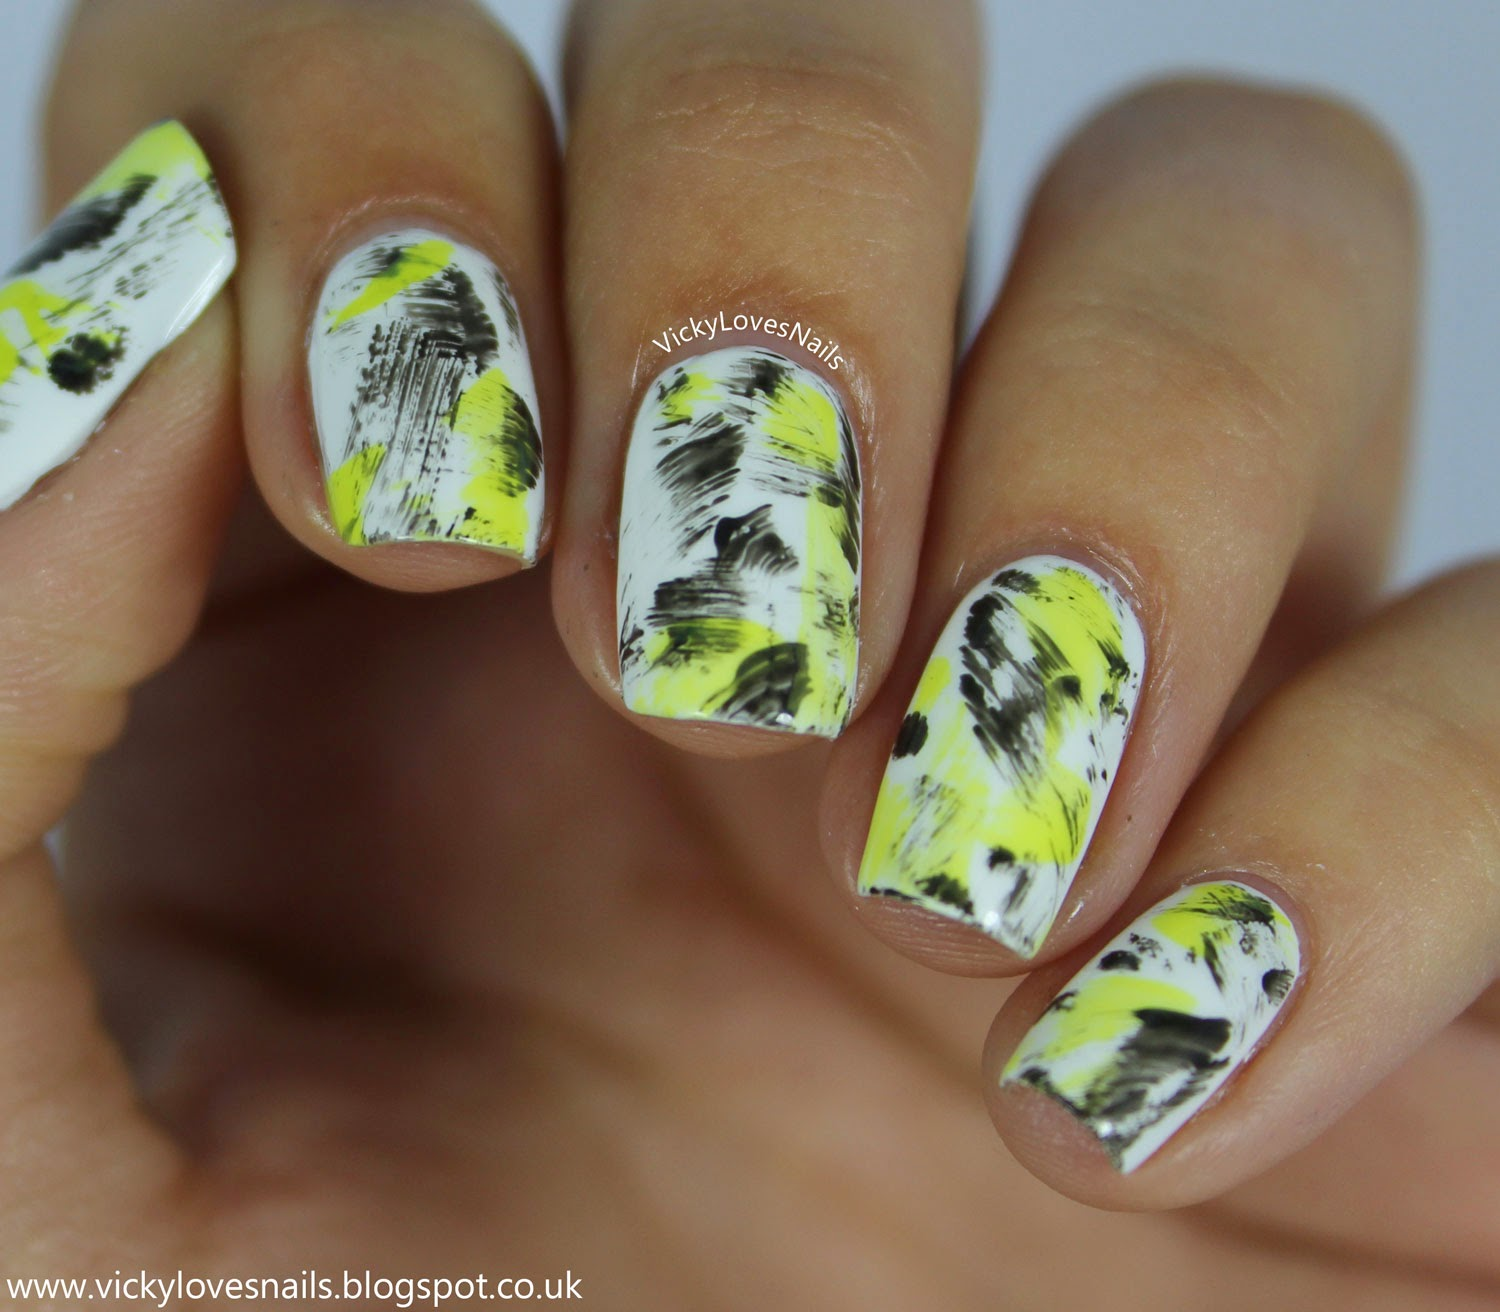 Vicky Loves Nails!: Fashion Inspired - Yellow, Black and White ...